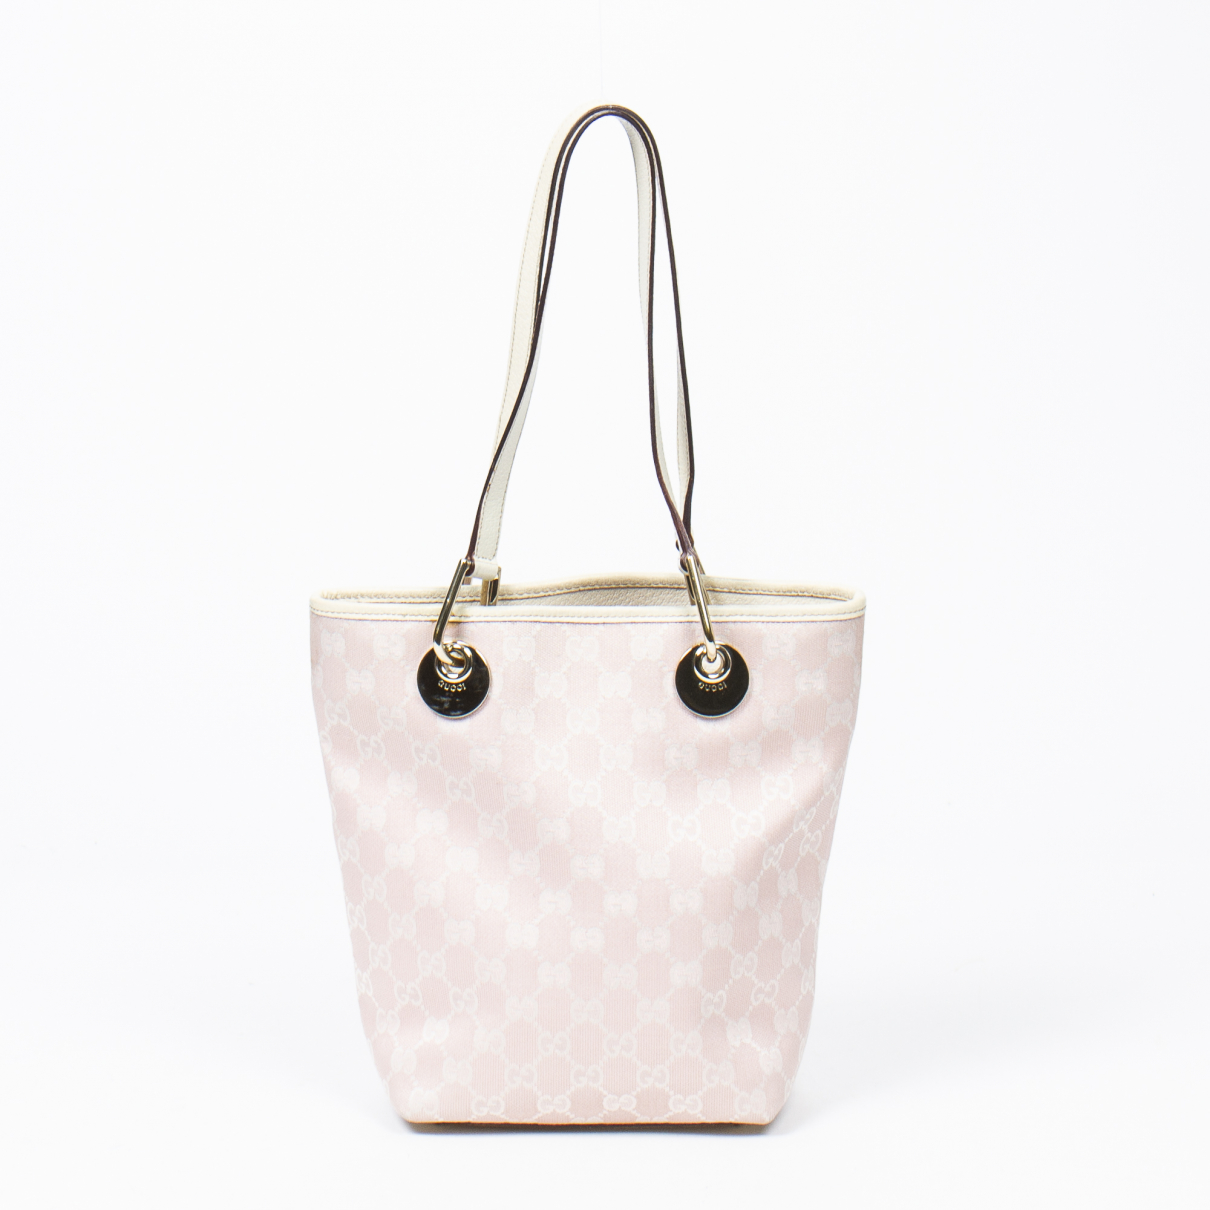 Gucci \N White Cotton handbag for Women \N